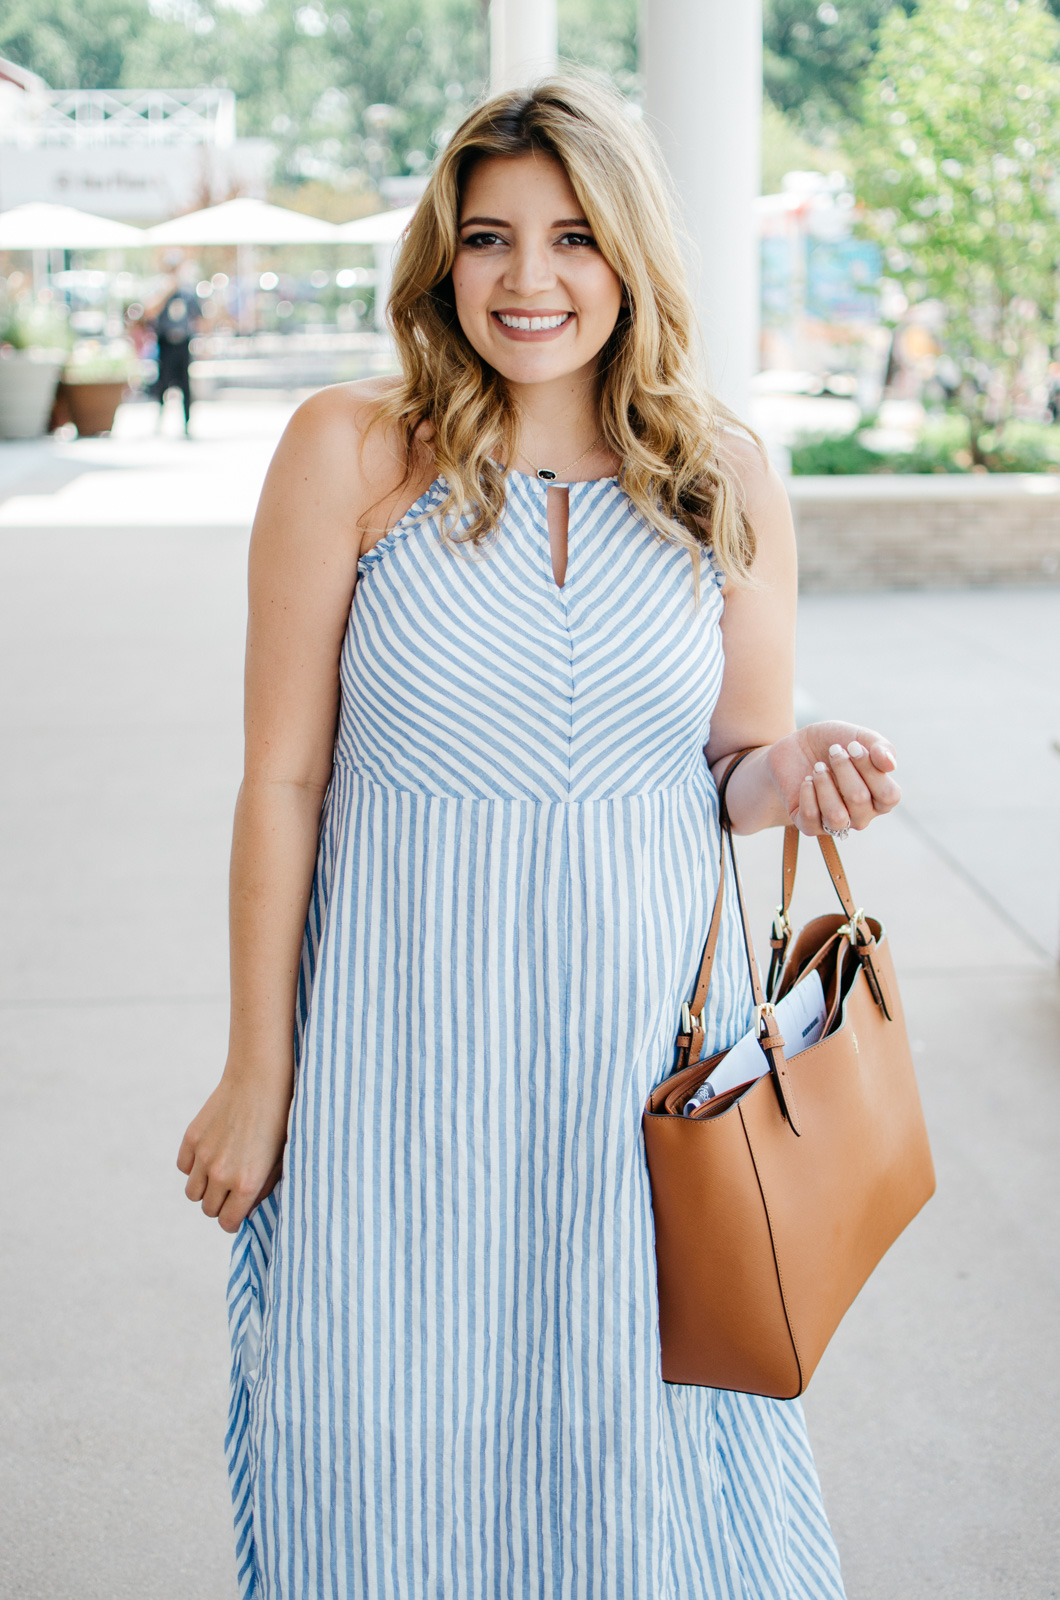 seersucker stripe maxi dress - preppy summer outfit | For more cute Summer outfit ideas, go to bylaurenm.com!